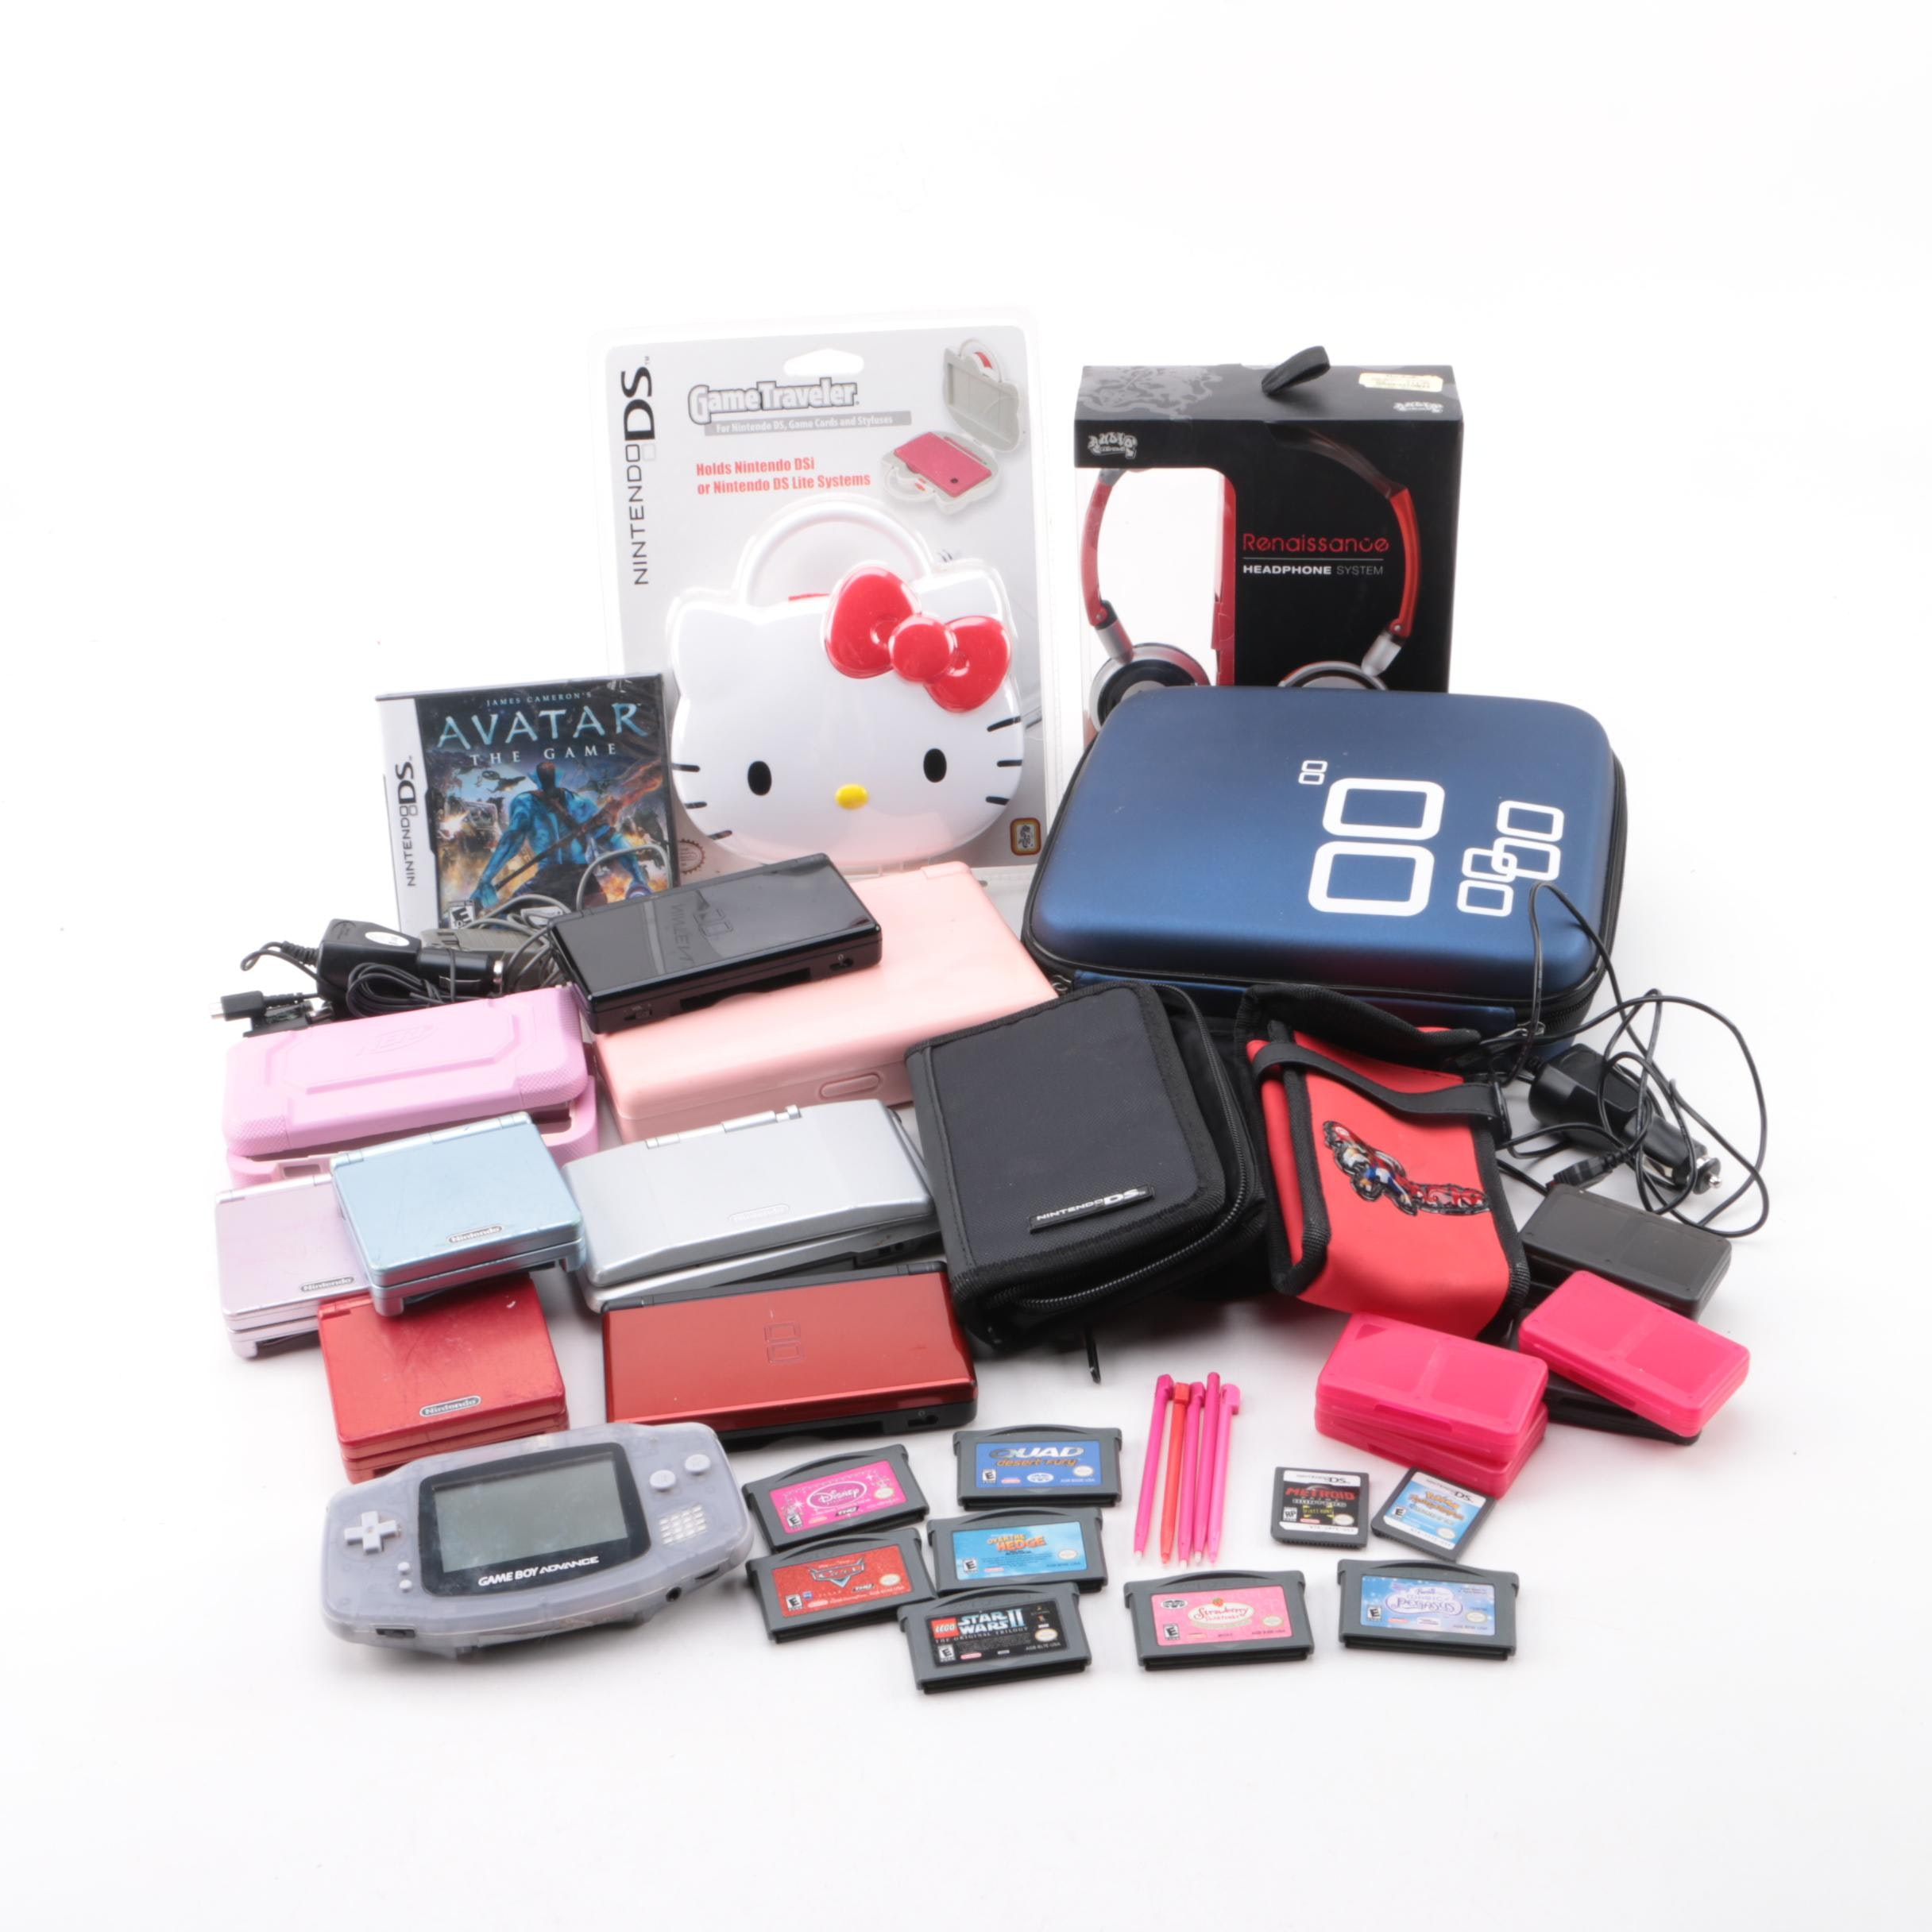 Nintendo Handheld Gaming Consoles and Accessories